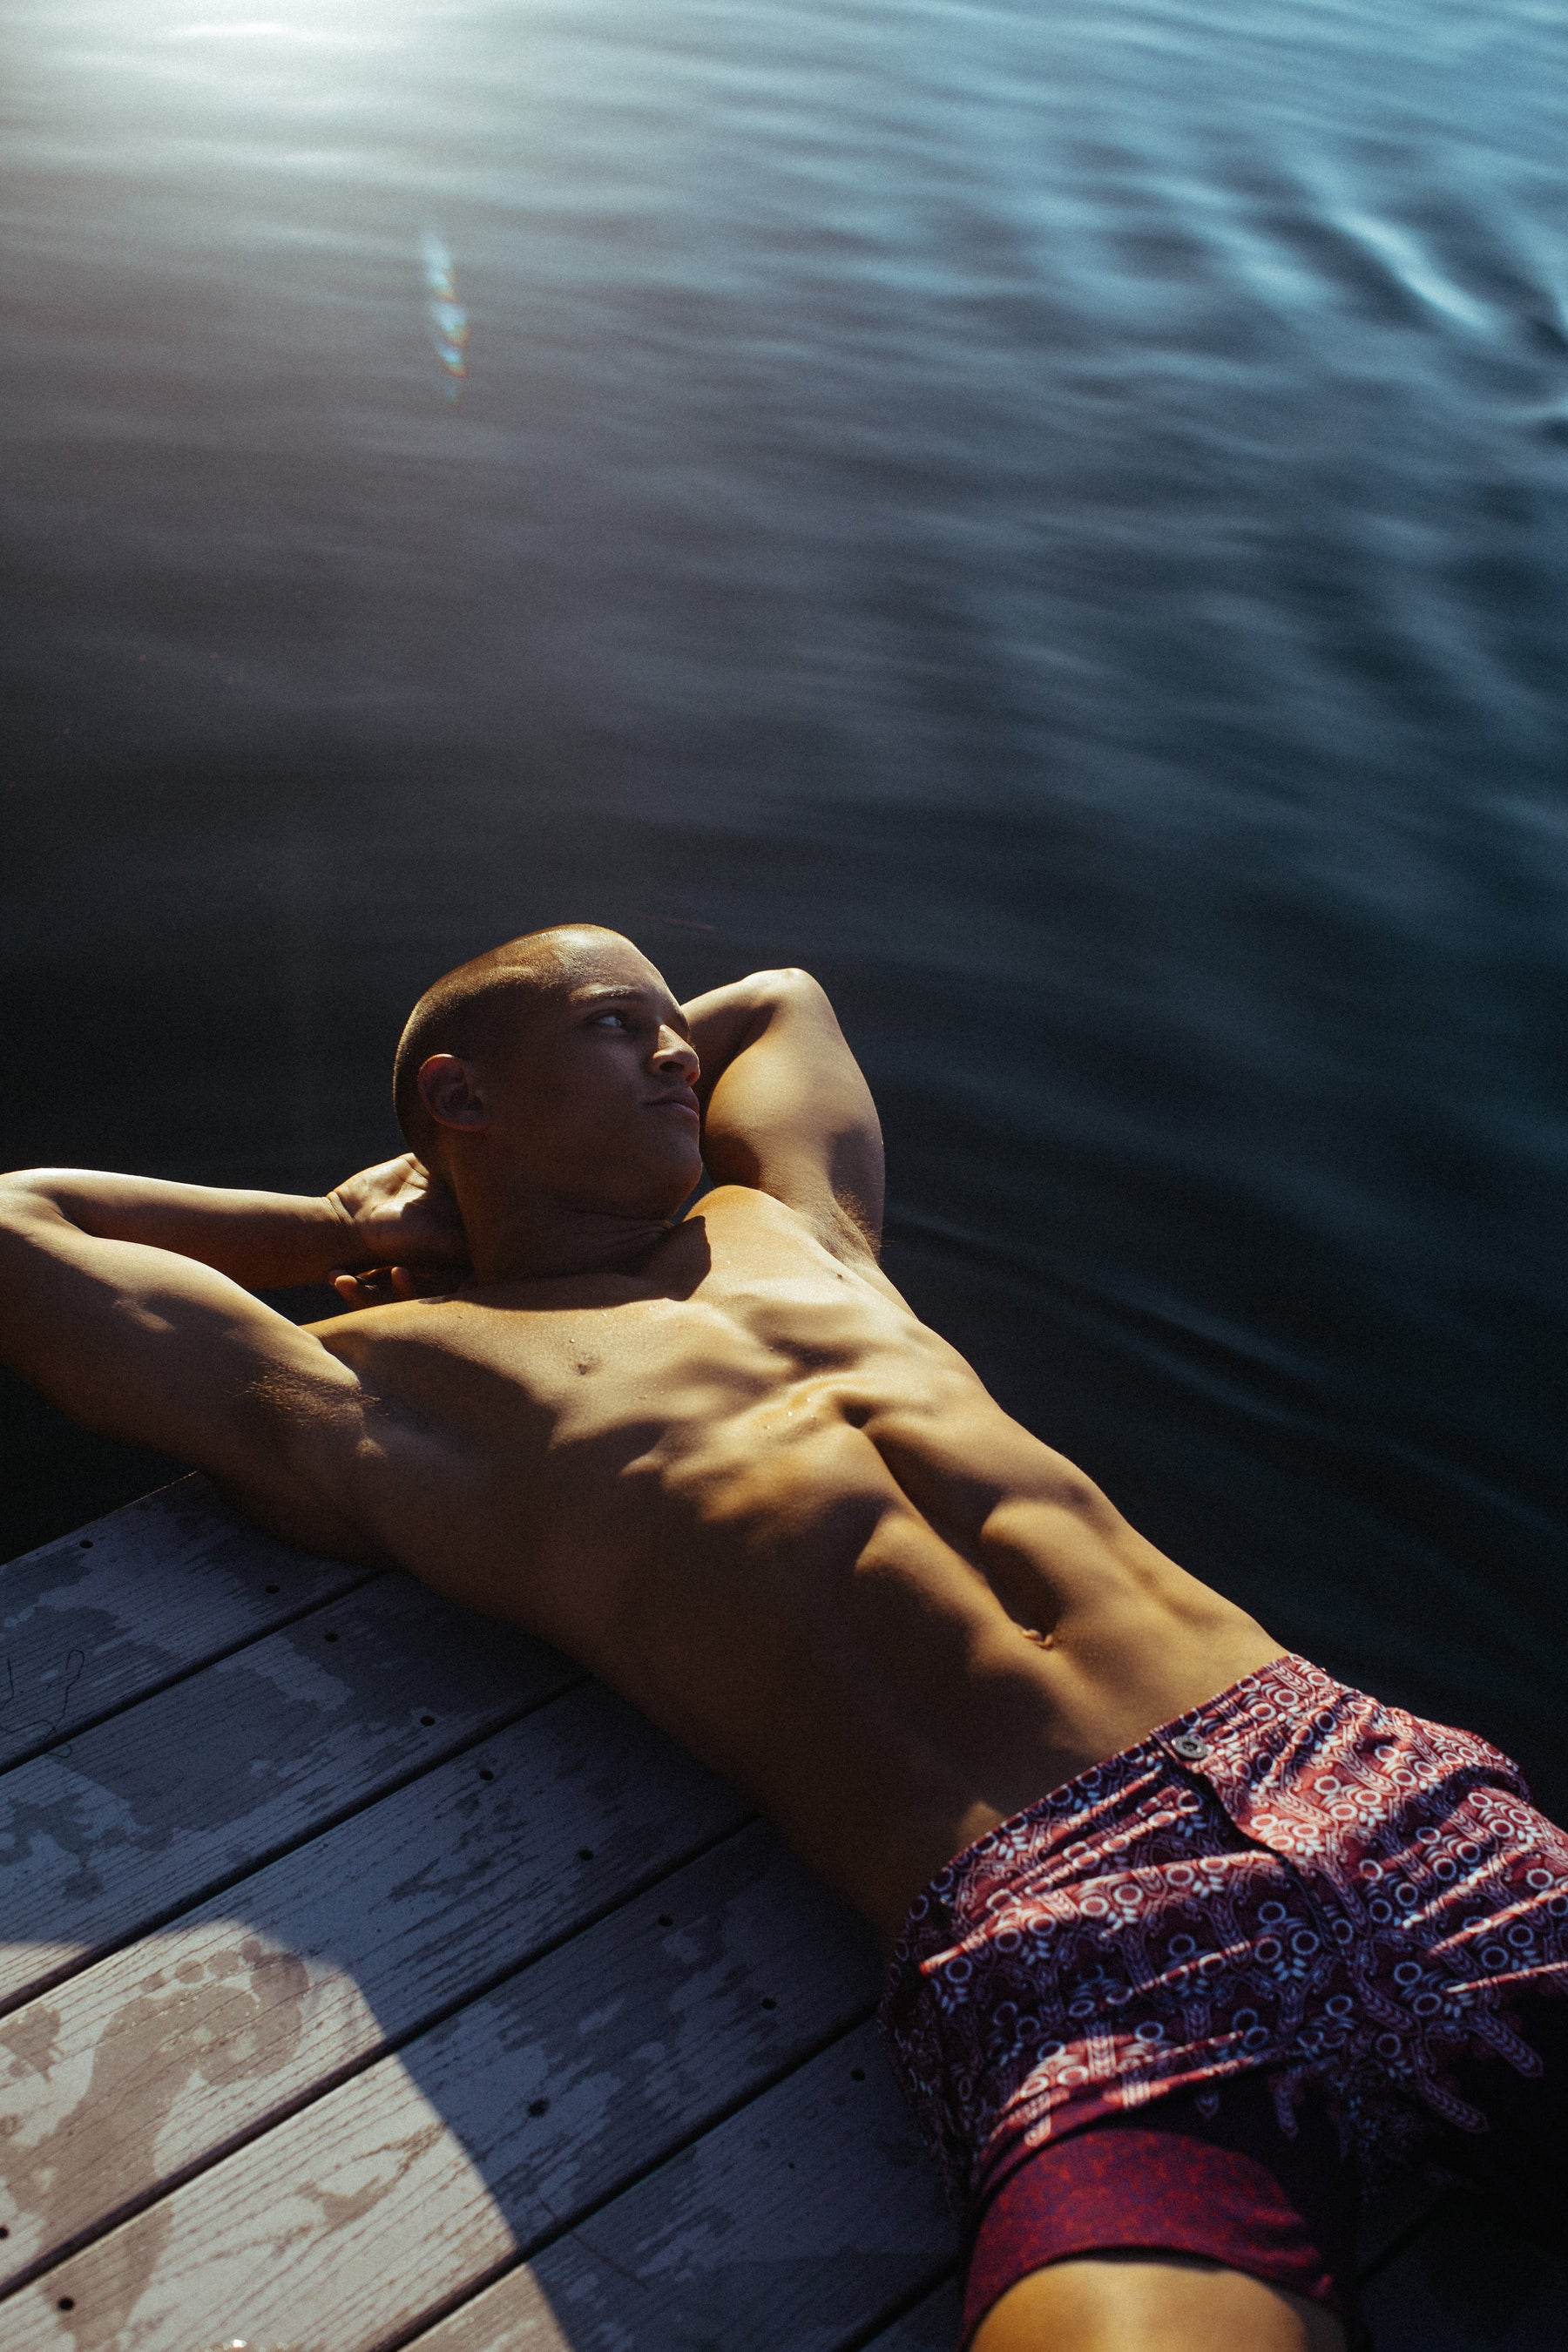 Parke & Ronen Summer campaign image of male model and water